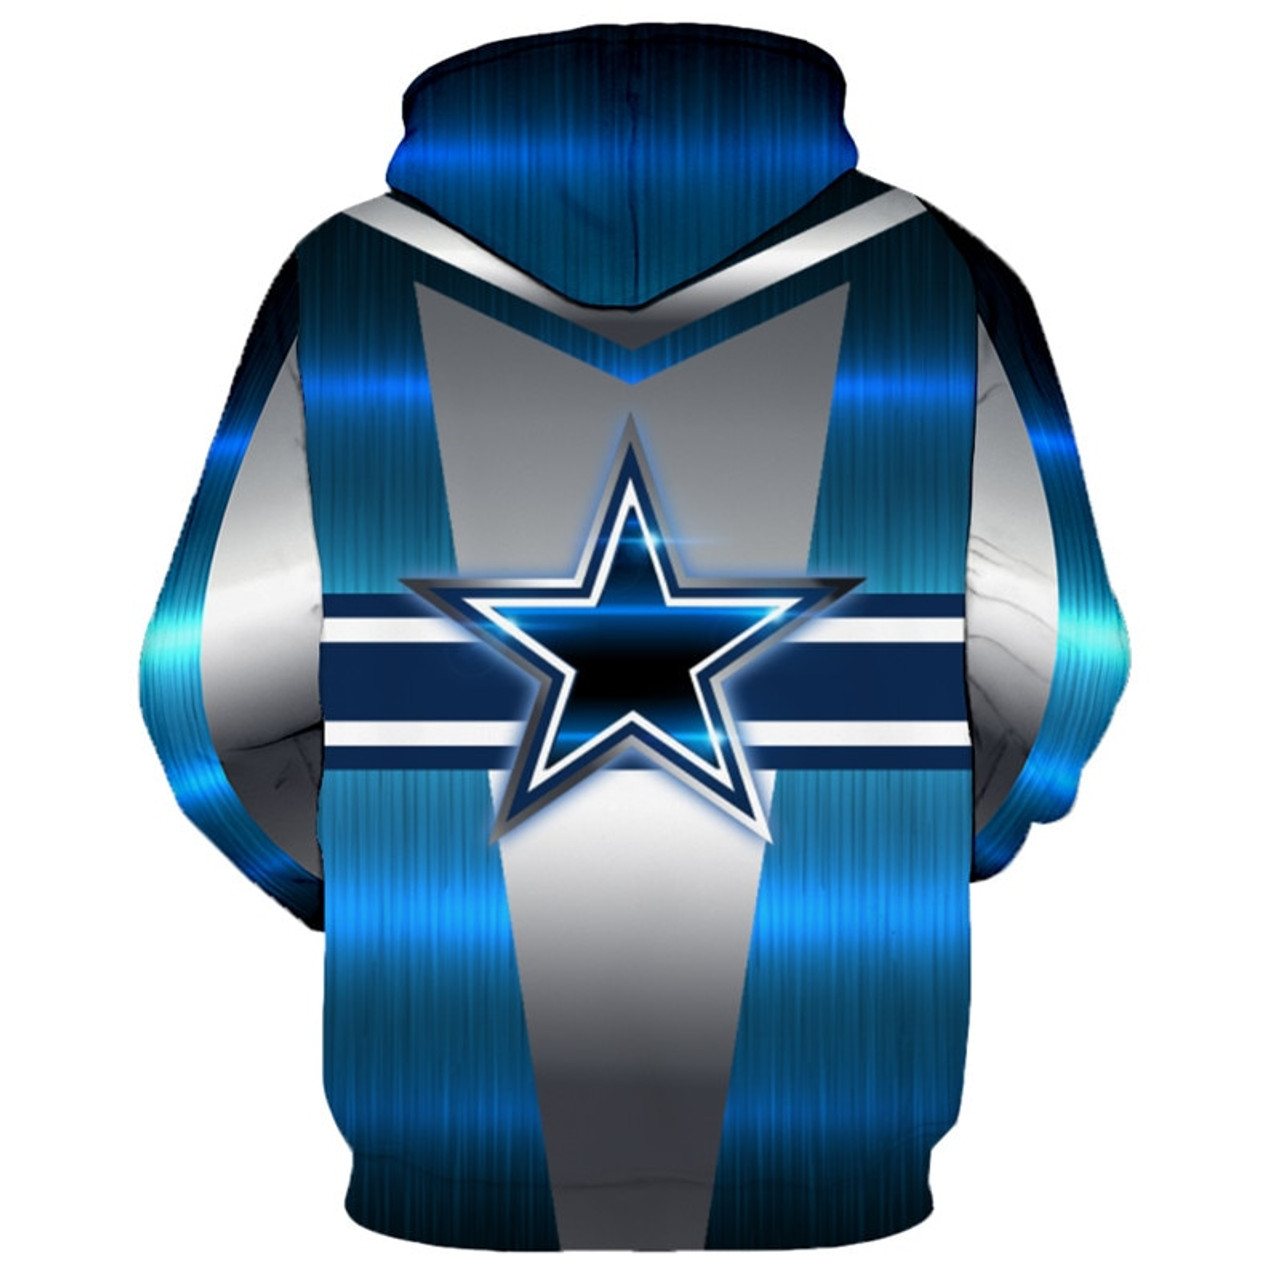 **(NEW-OFFICIALLY-LICENSED-N.F.L. DALLAS-COWBOYS,OFFICIAL-TEAM-HOODIES/NICE-CUSTOM-DETAILED-3D-GRAPHIC-PRINTED/PREMIUM-ALL-OVER-DOUBLE-SIDED/OFFICIAL-COWBOYS-TEAM-COLORS & CLASSIC-COWBOYS-STAR-LOGO/DEEP-POCKETED-PULLOVER-HOODIES)**